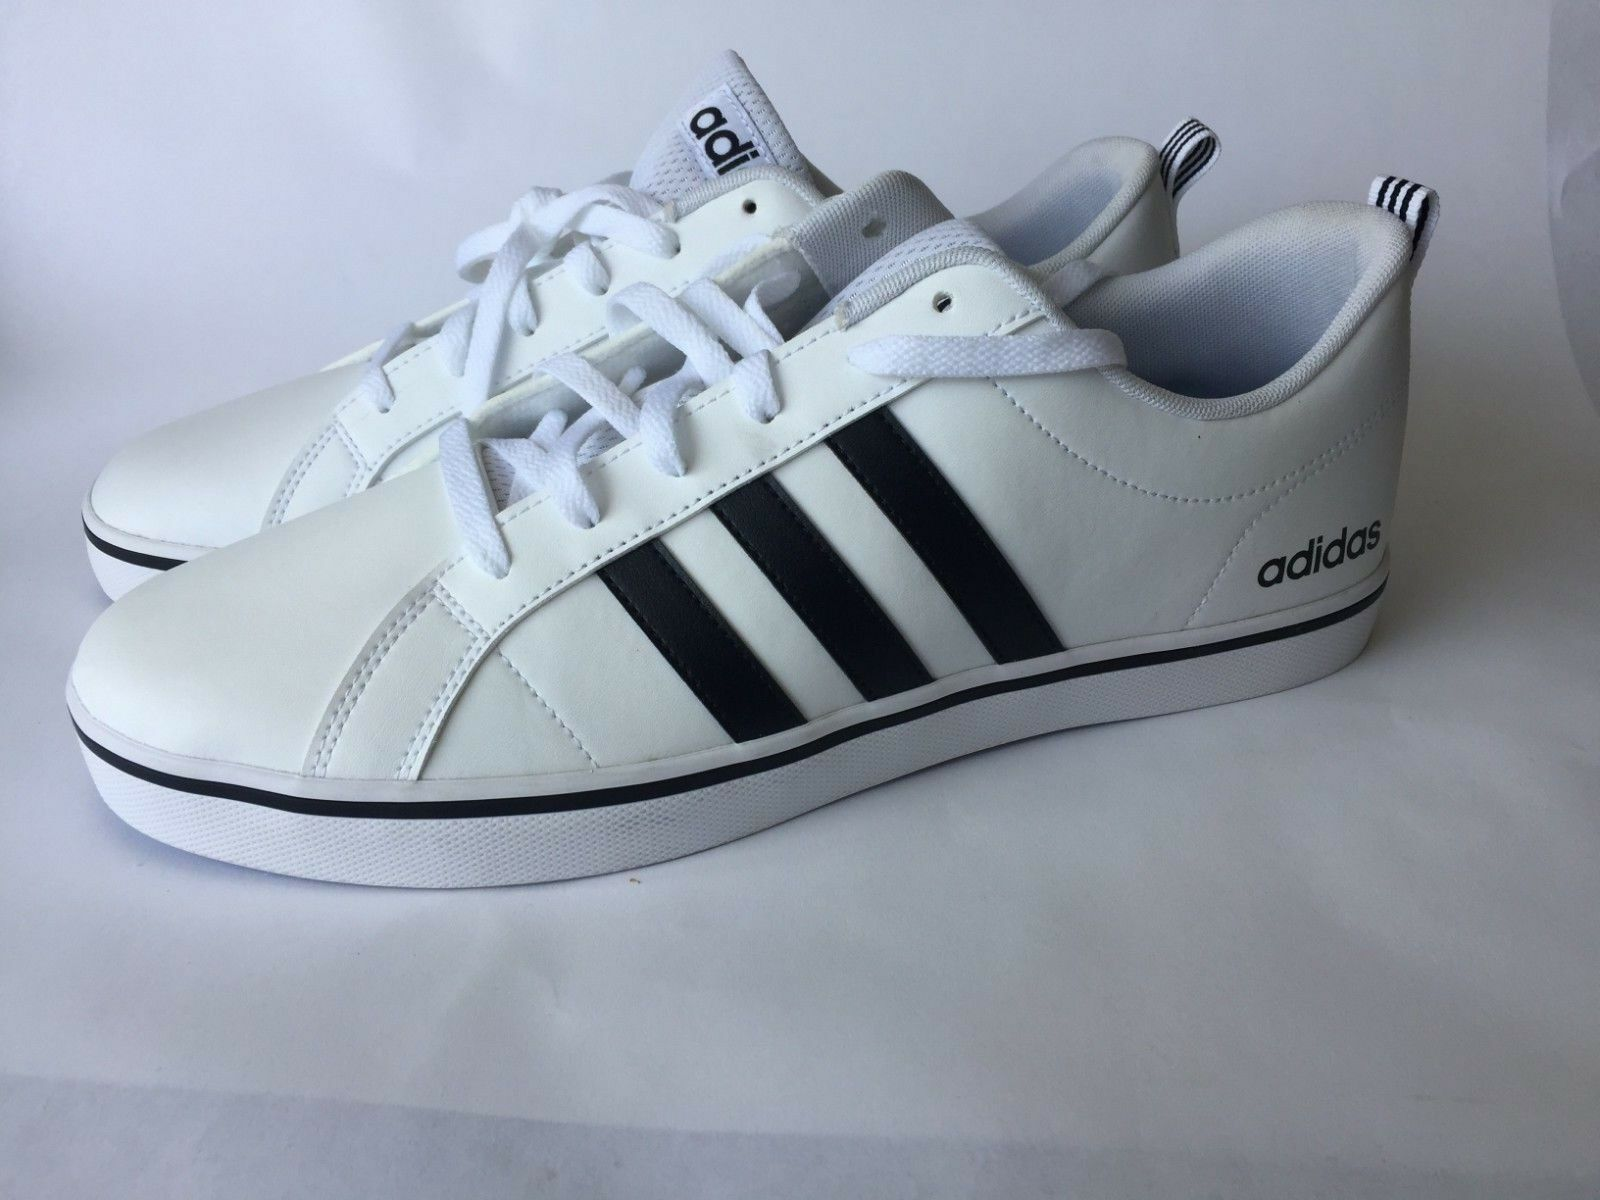 Adidas Neo Pace Mens White/Black AW4594 Classsic Tennis Shoe Comfortable The most popular shoes for men and women